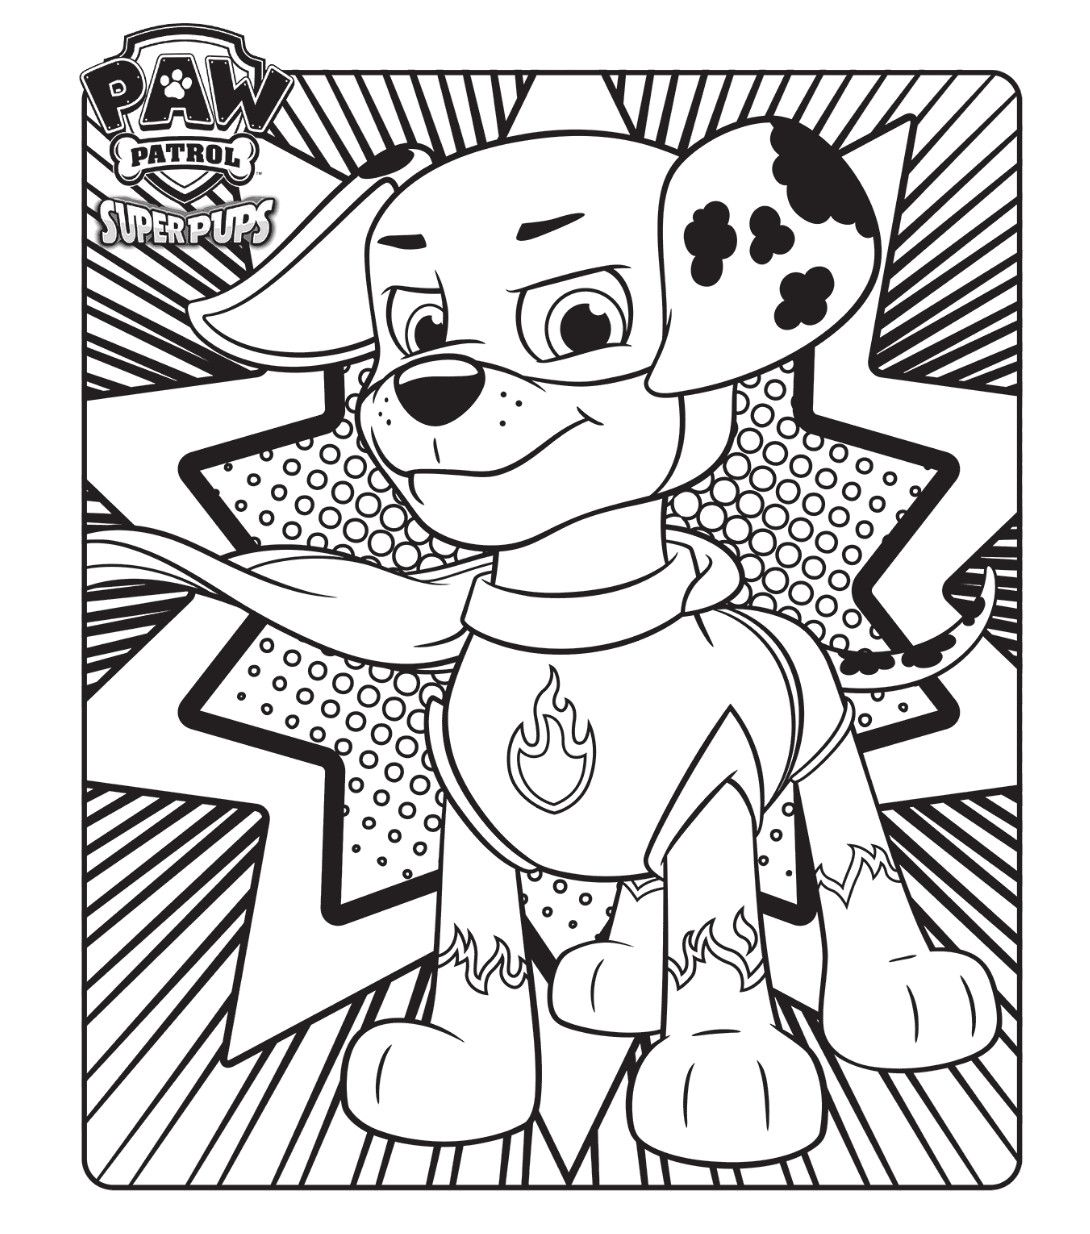 Paw Patrol Coloring Page Best Of Paw Patrol Super Pups Colouring